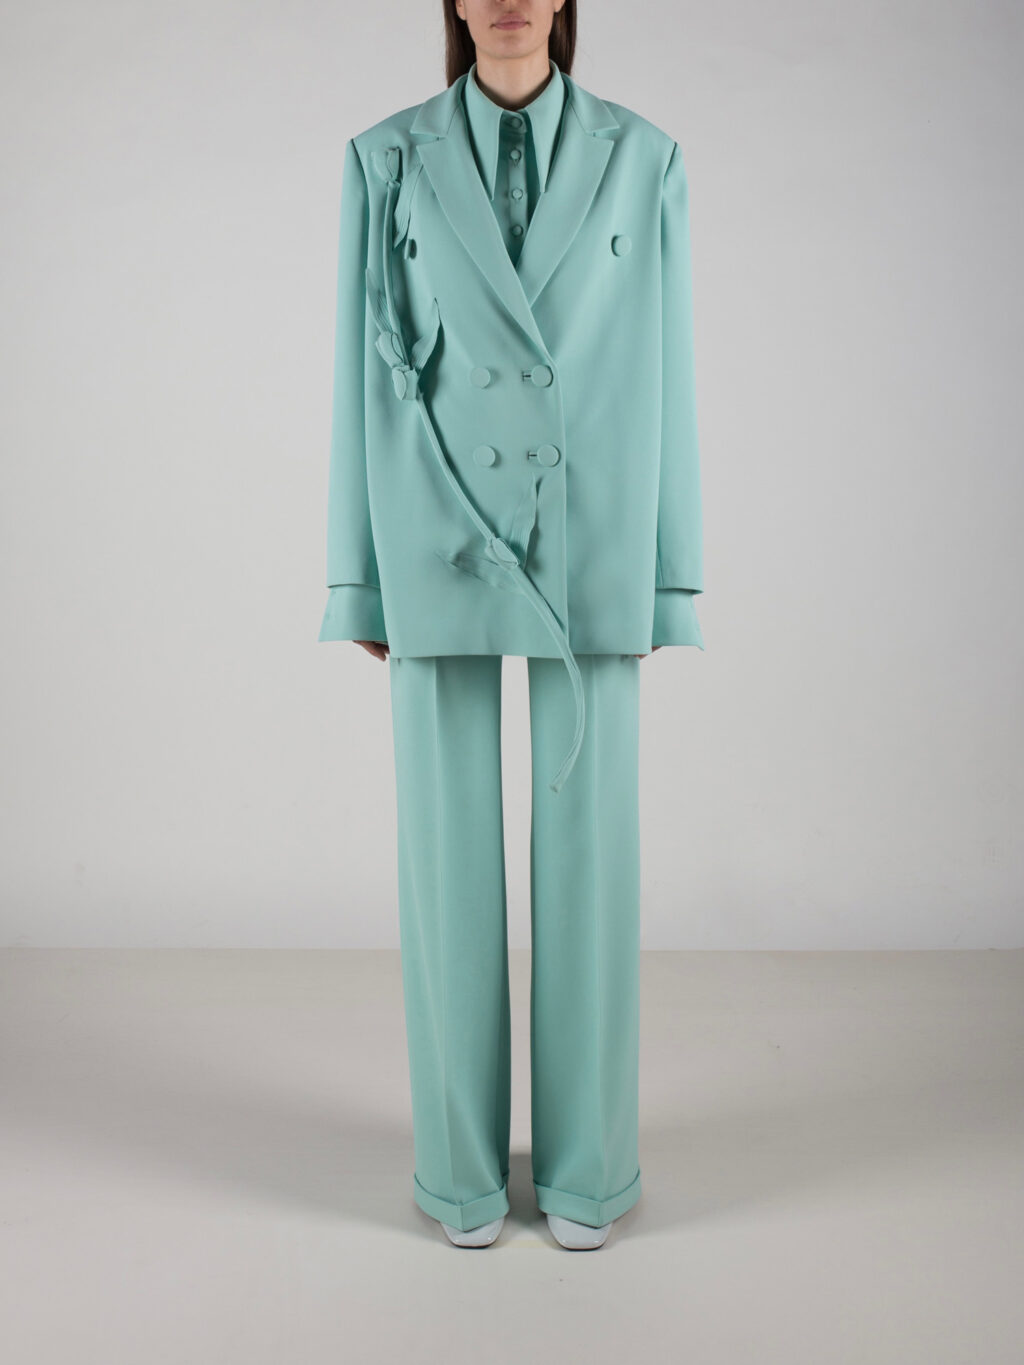 Jacket With Flower Detail In Mint